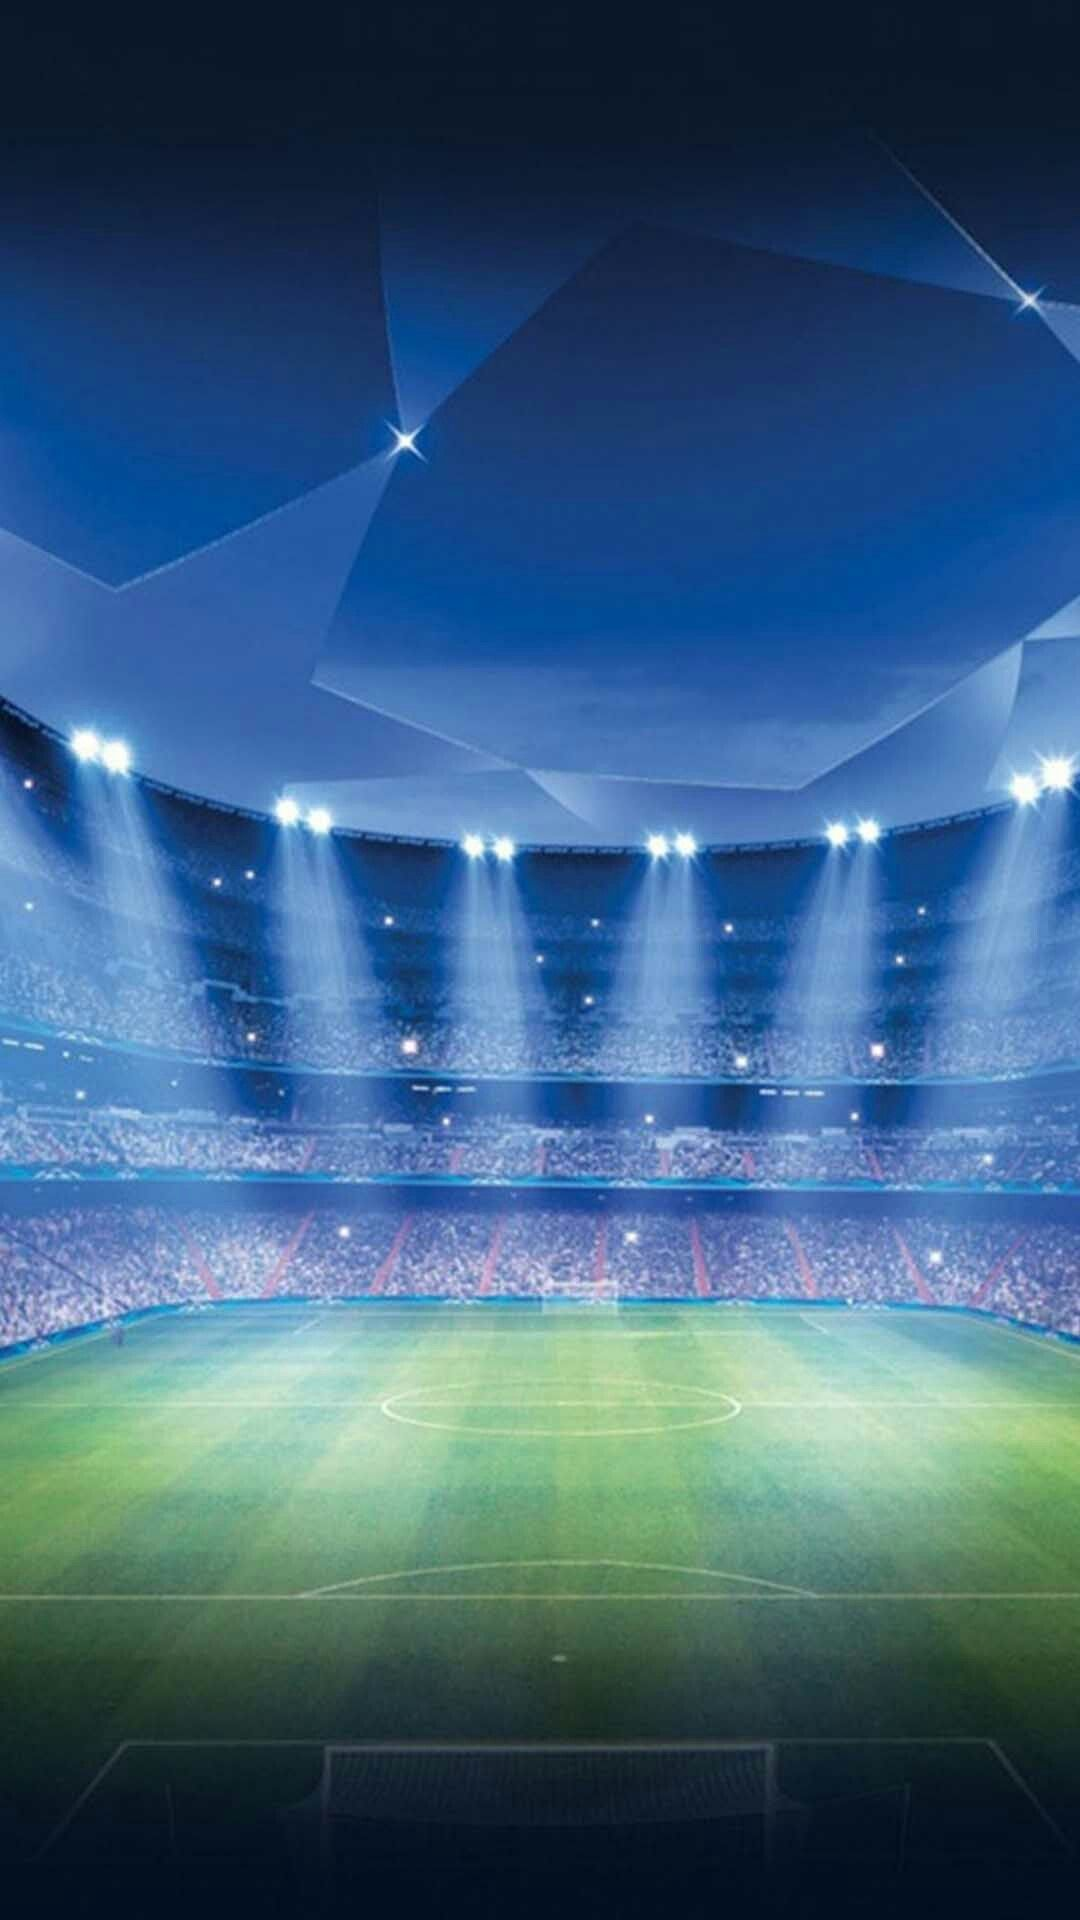 1080x1920 Soccer Stadium Wallpaper Stadium Wallpaper Football Wallpaper Soccer Stadium